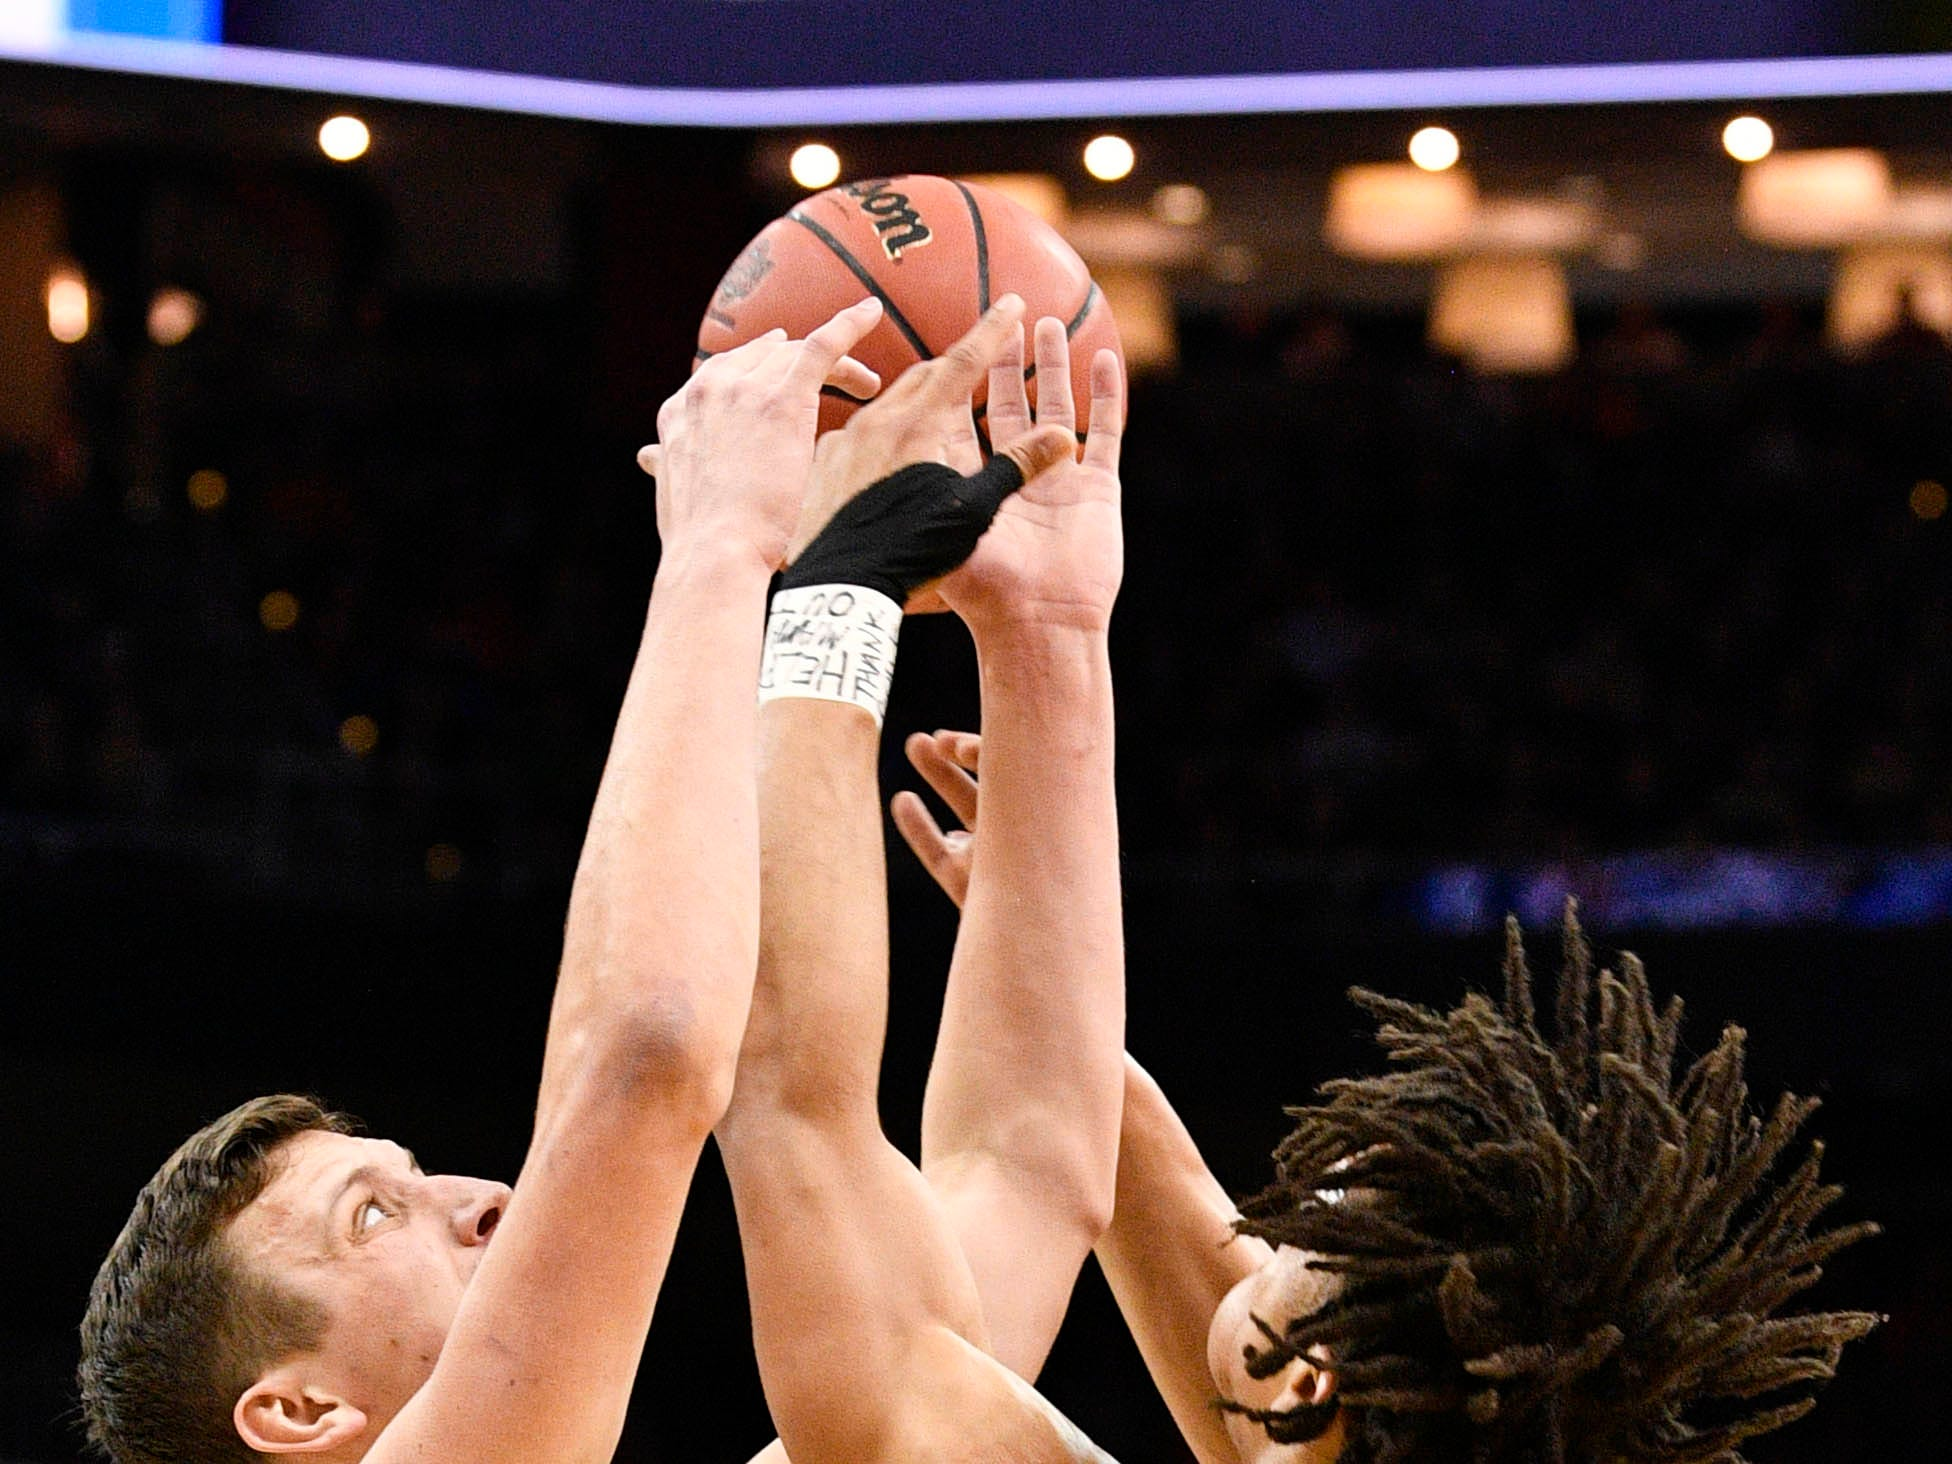 Mar 30, 2019; Louisville, KY, United States; Purdue Boilermakers forward Grady Eifert (24) and guard Carsen Edwards (3) go after the ball during the first half in the championship game against the Virginia Cavaliers of the south regional of the 2019 NCAA Tournament at KFC Yum Center. Mandatory Credit: Jamie Rhodes-USA TODAY Sports